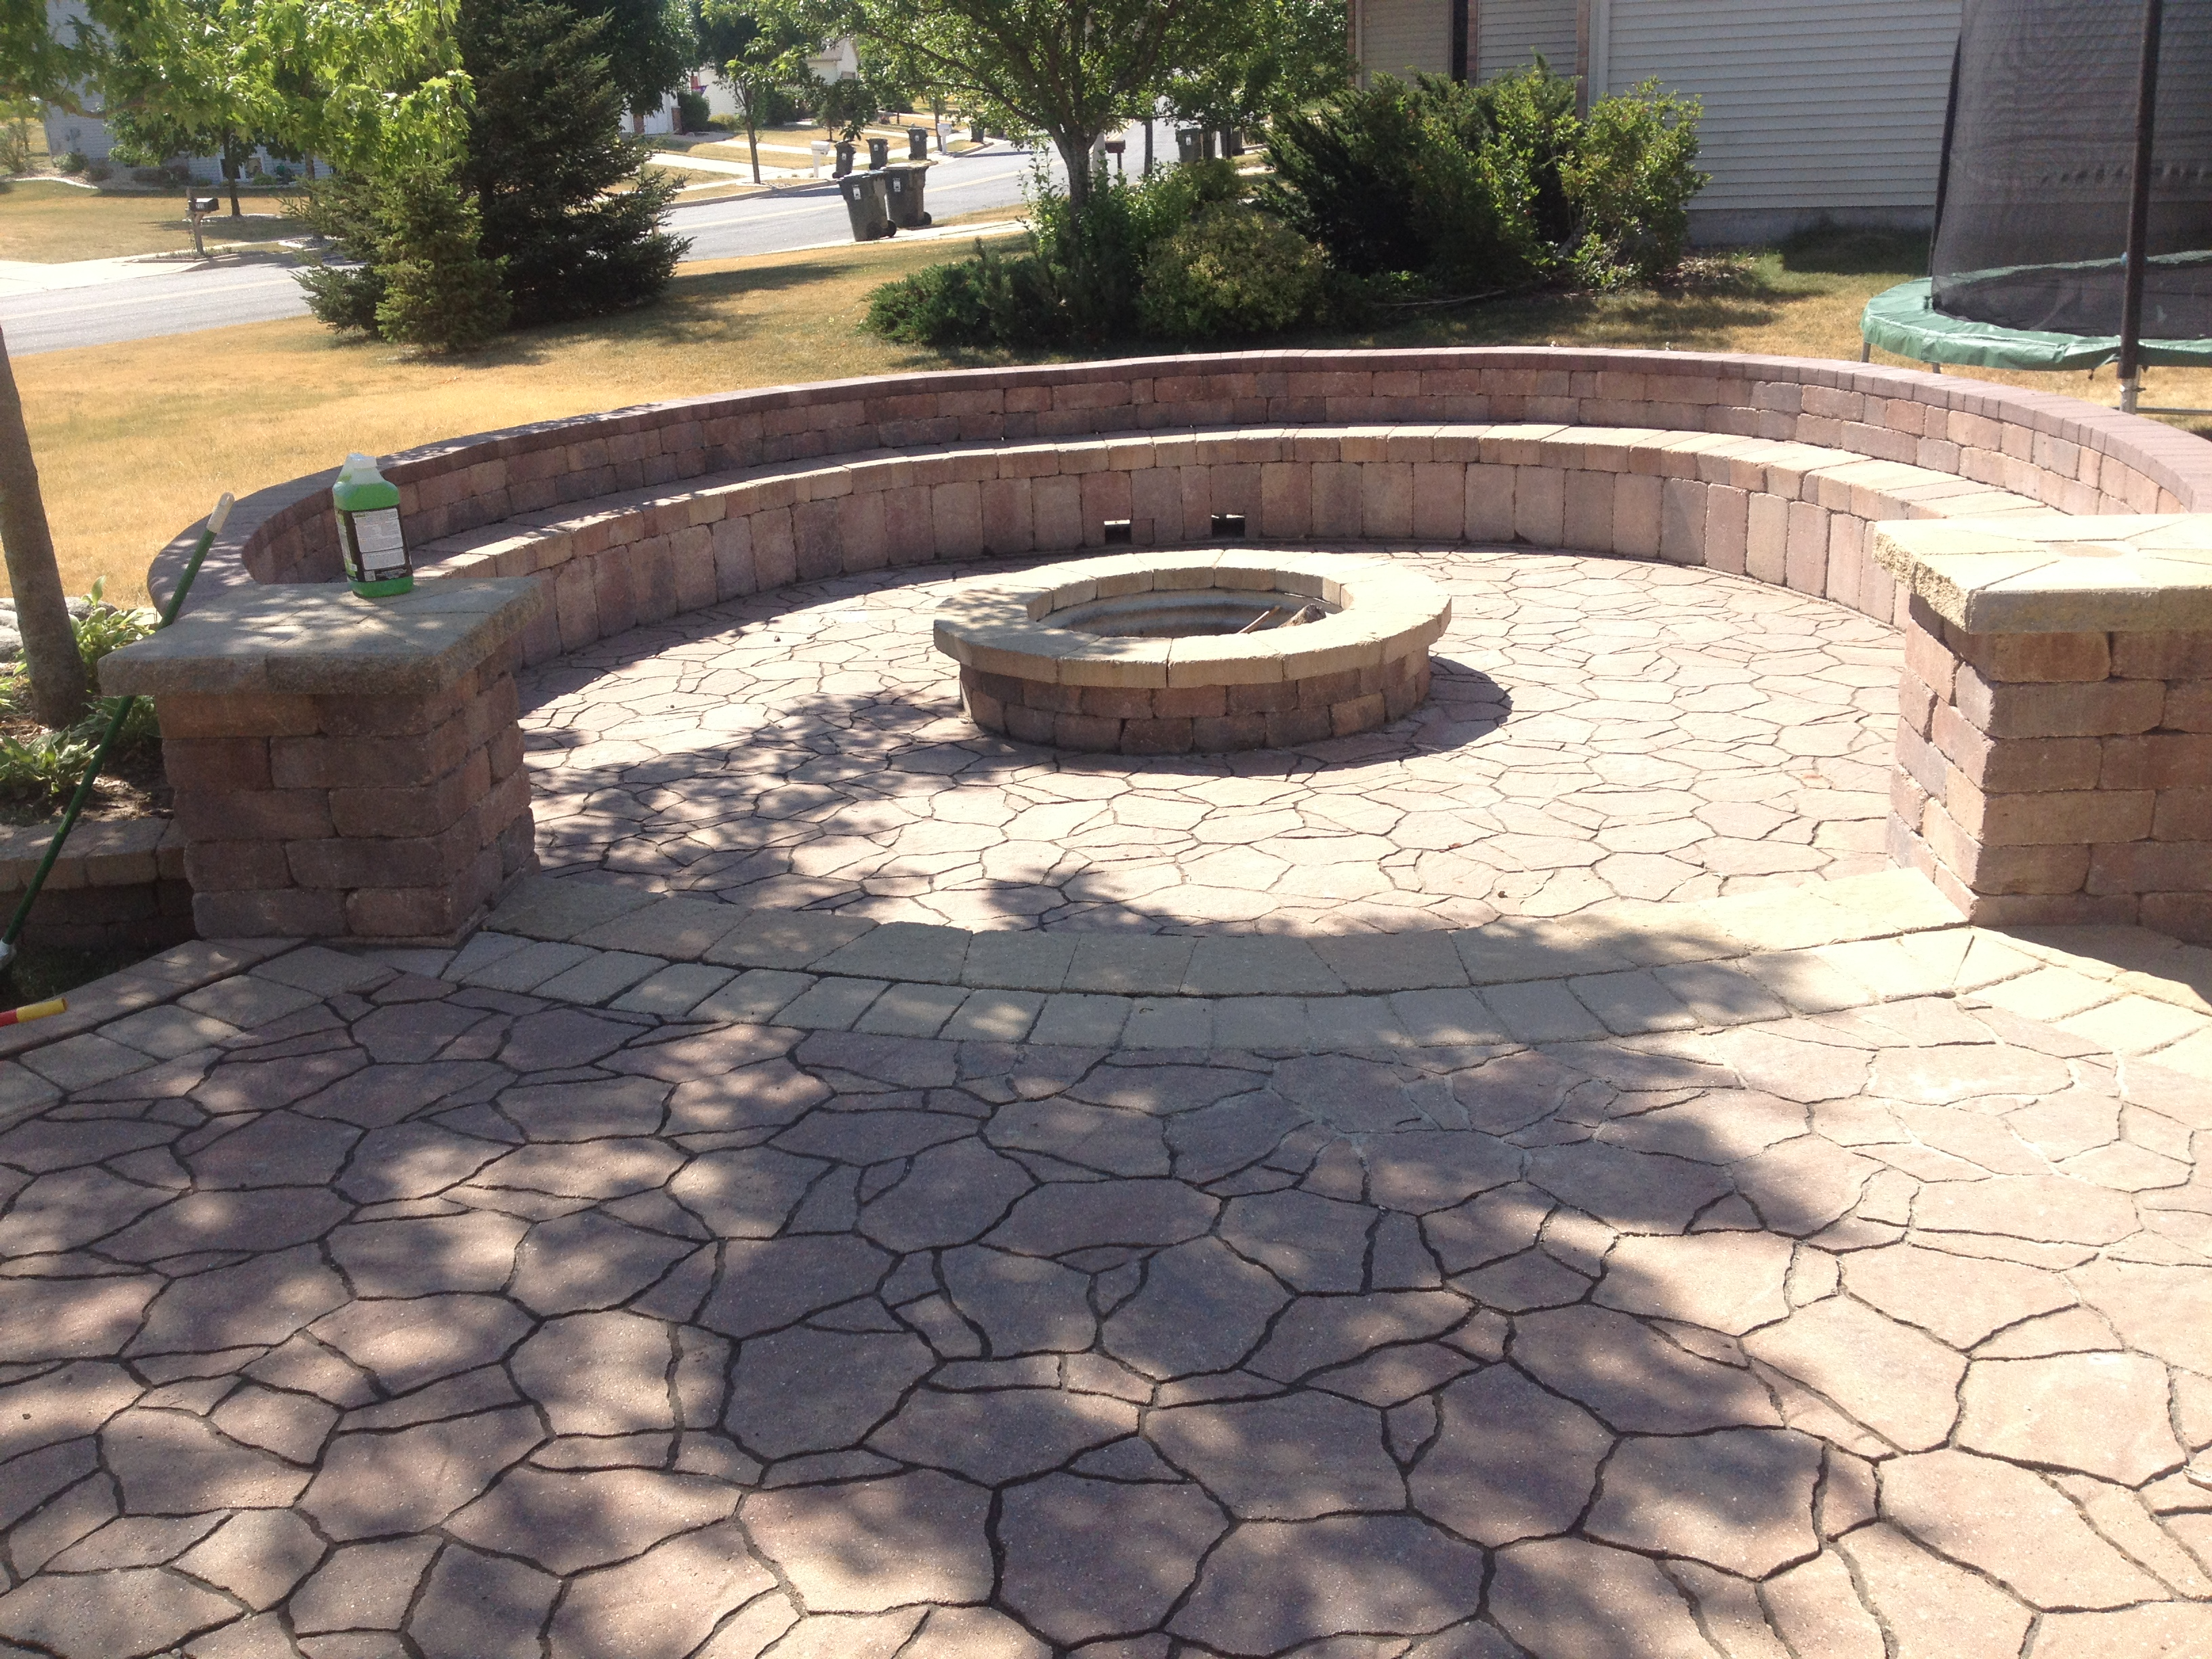 Patio Pavers | Patio Paver Ideas | Madison WI | Marvins ... on Paver Patio Designs With Fire Pit id=53592